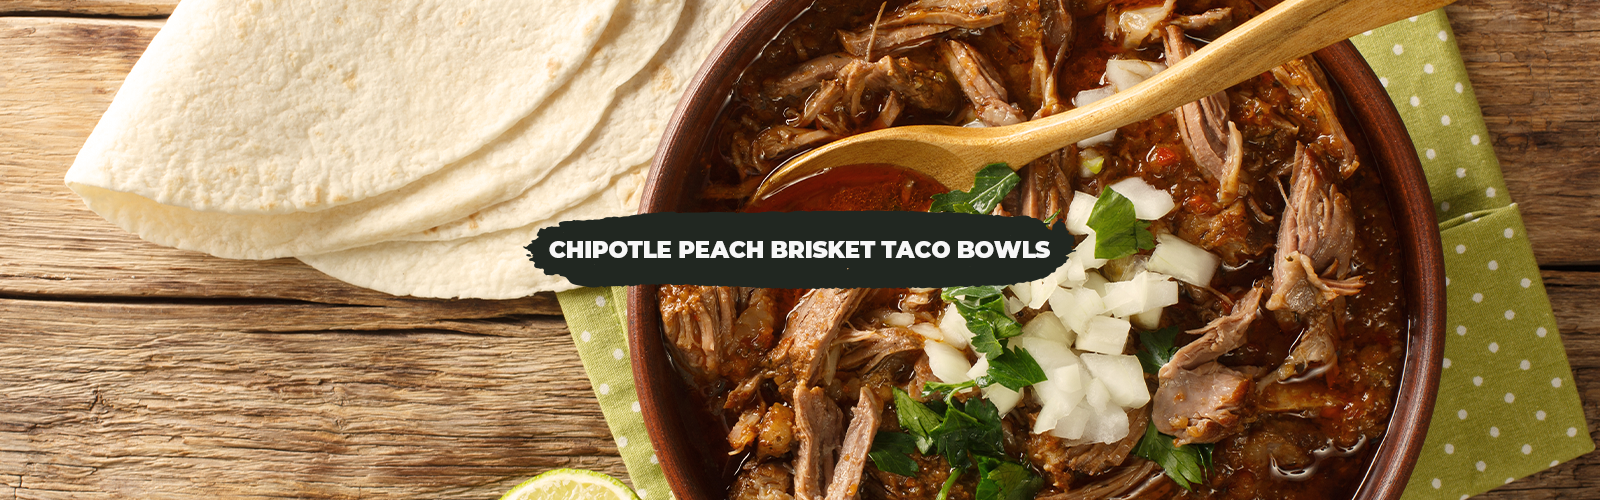 Chipotle Peach Brisket Taco Bowls with Baked Brie